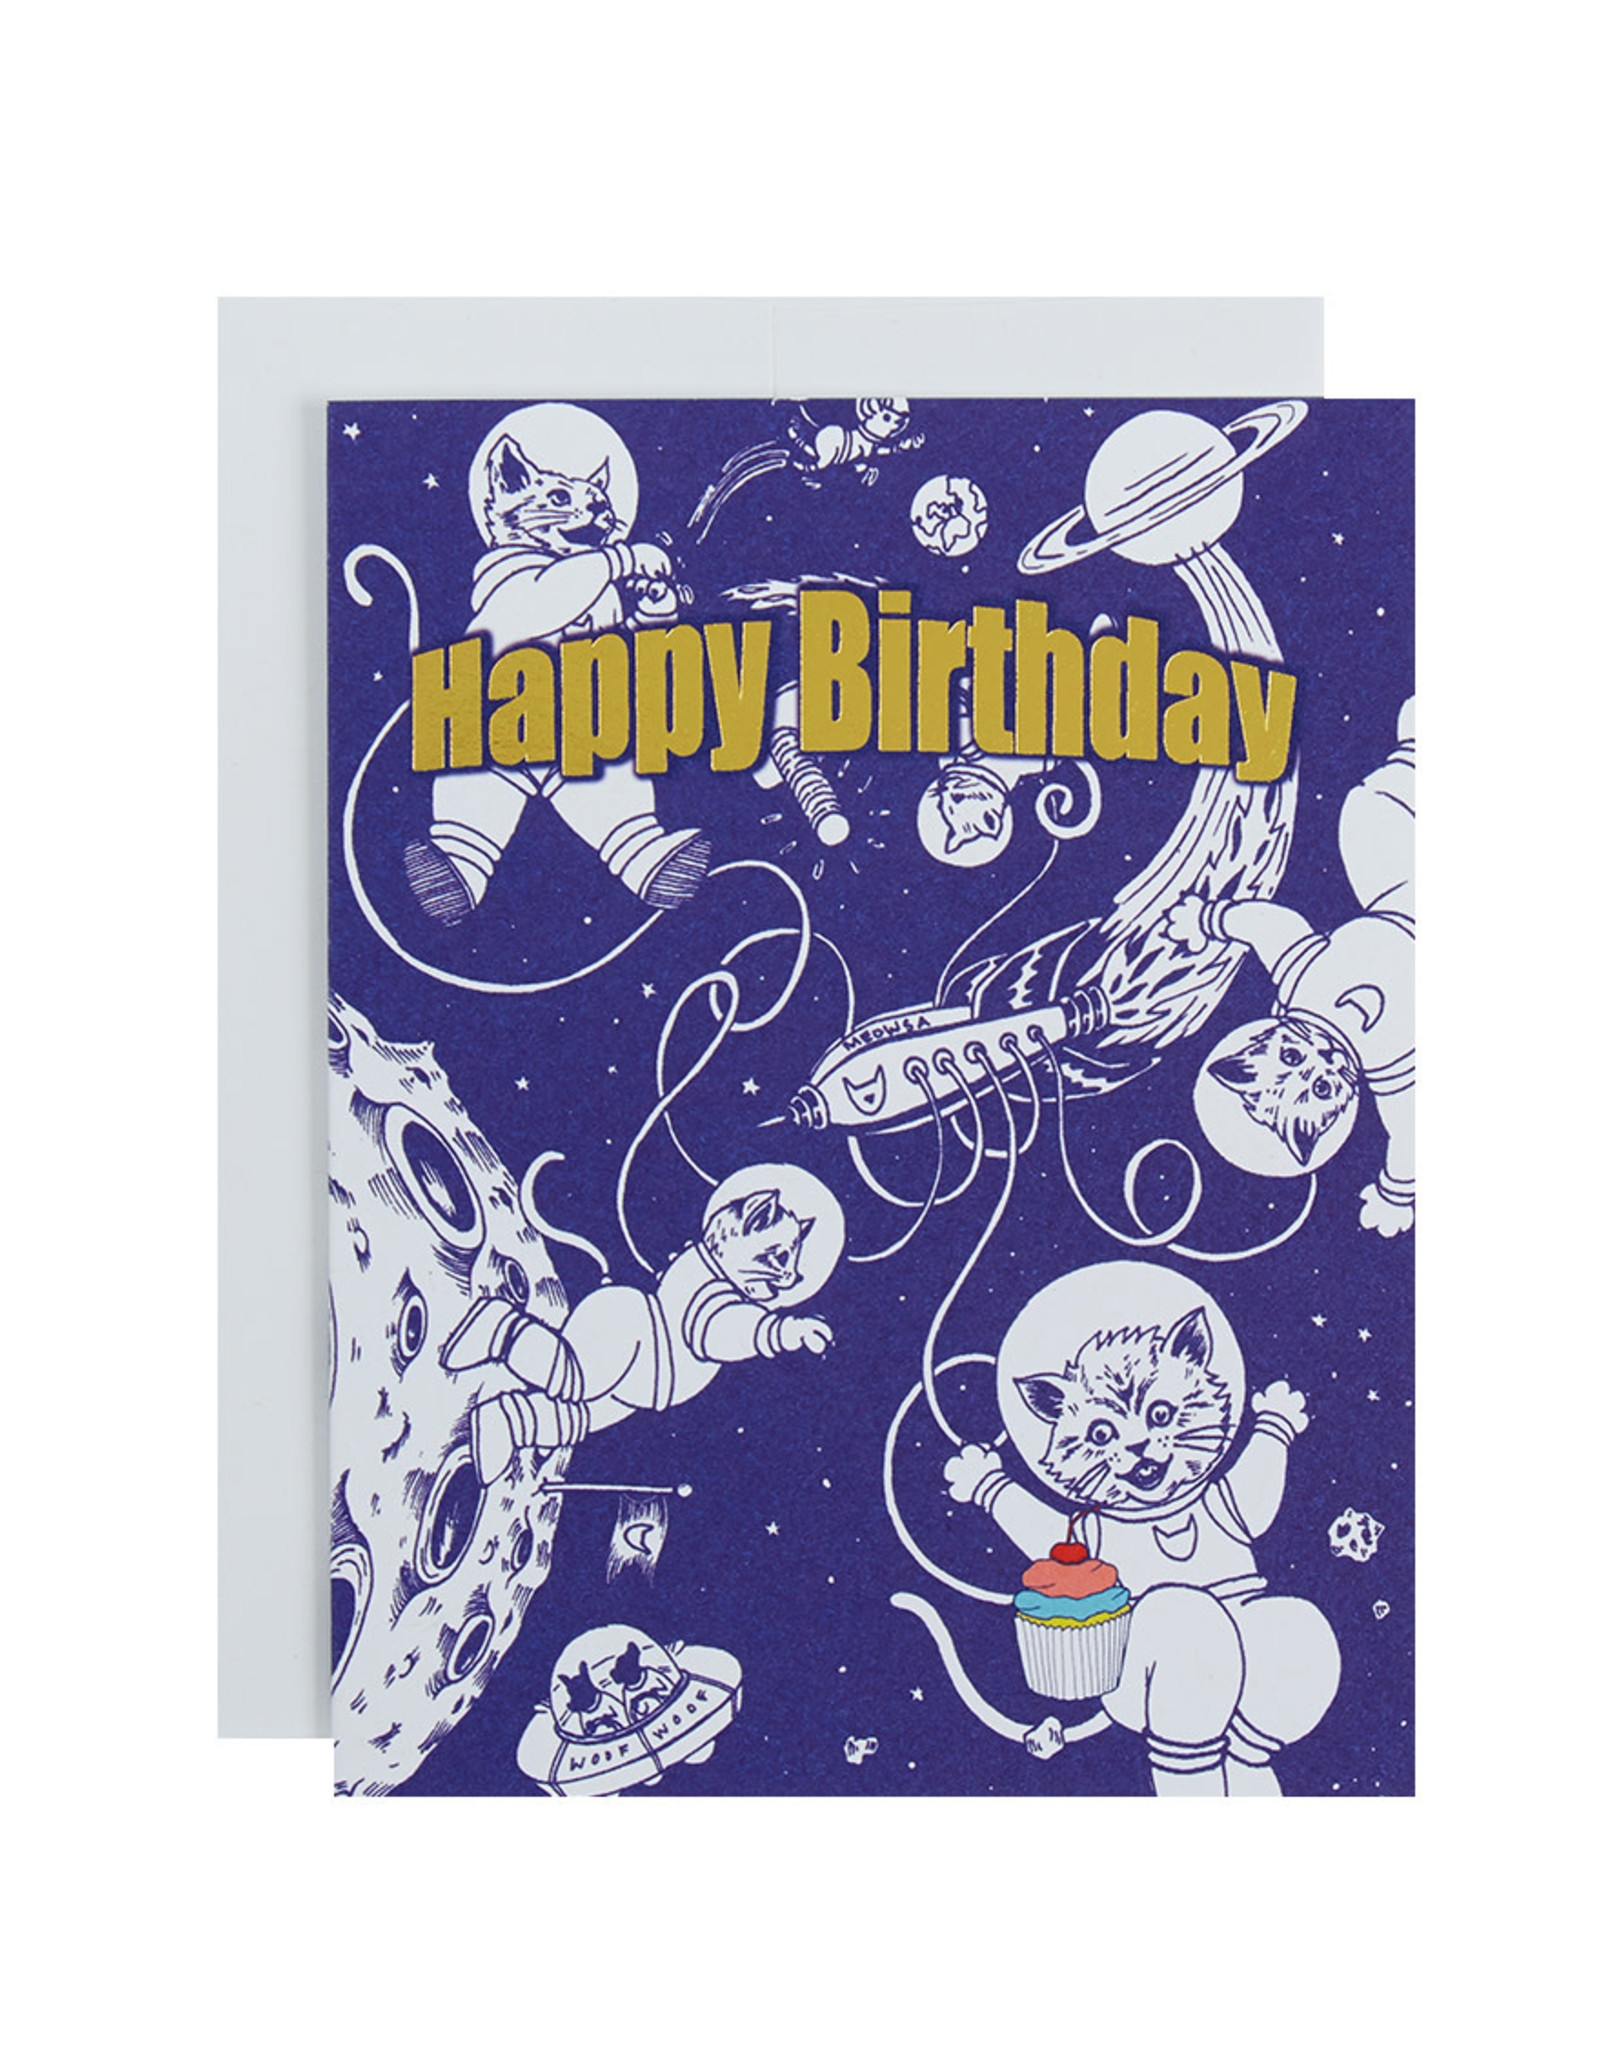 Michael Roger Birthday Kittens Greeting Card by Michael Roger